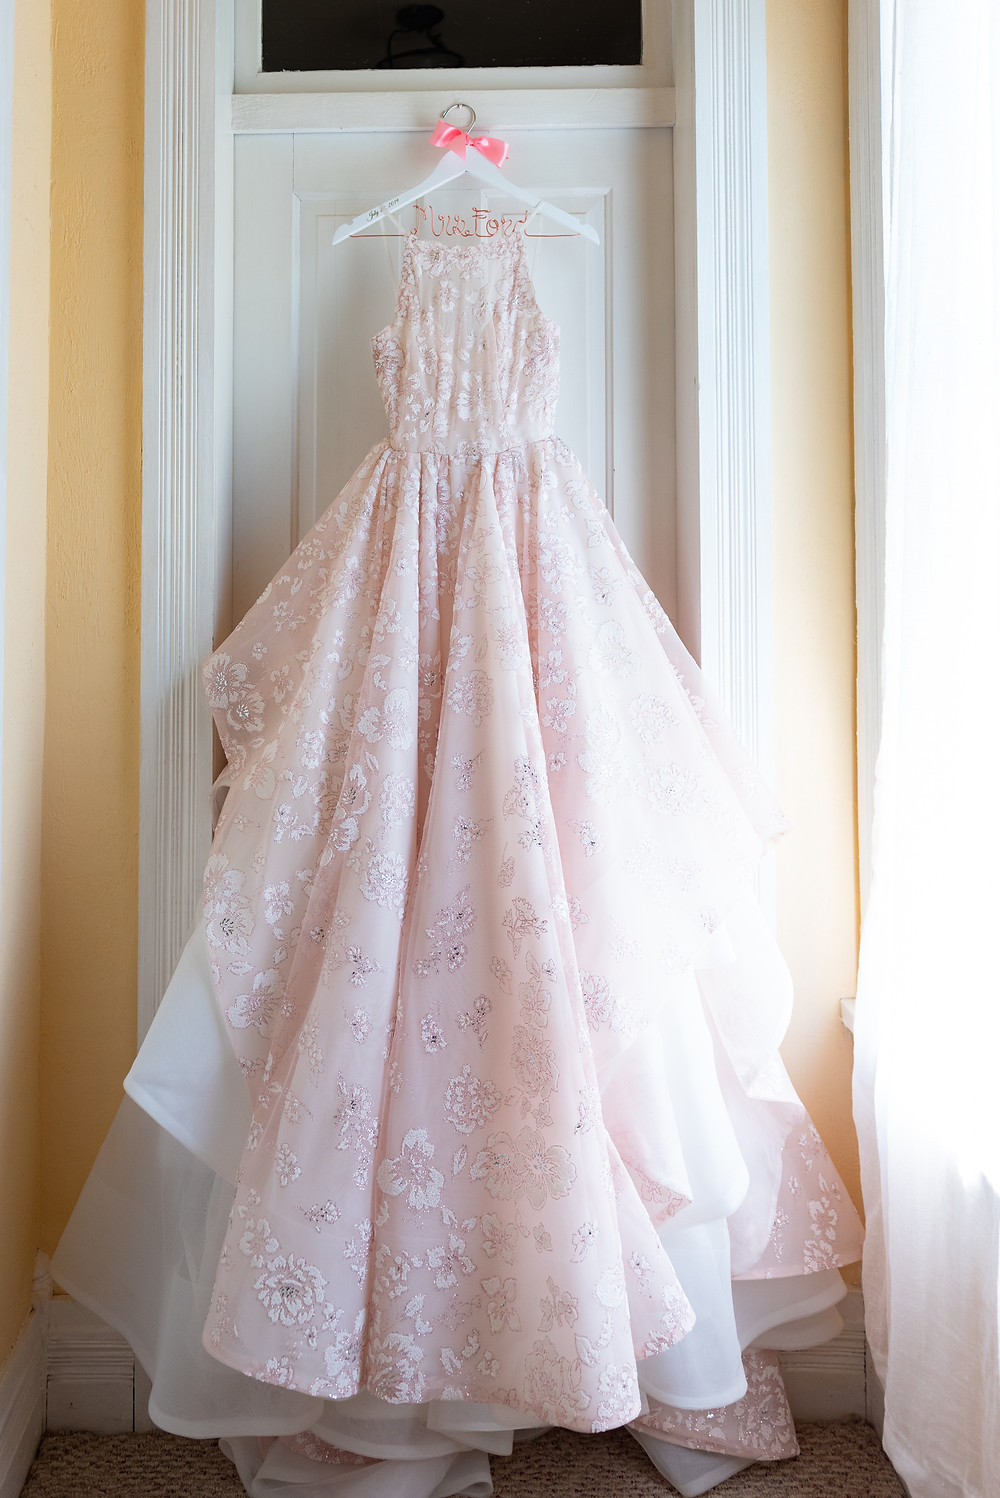 Pink Hayley Paige wedding dress hanging on a personalized hanger at Chanteclaire Farm